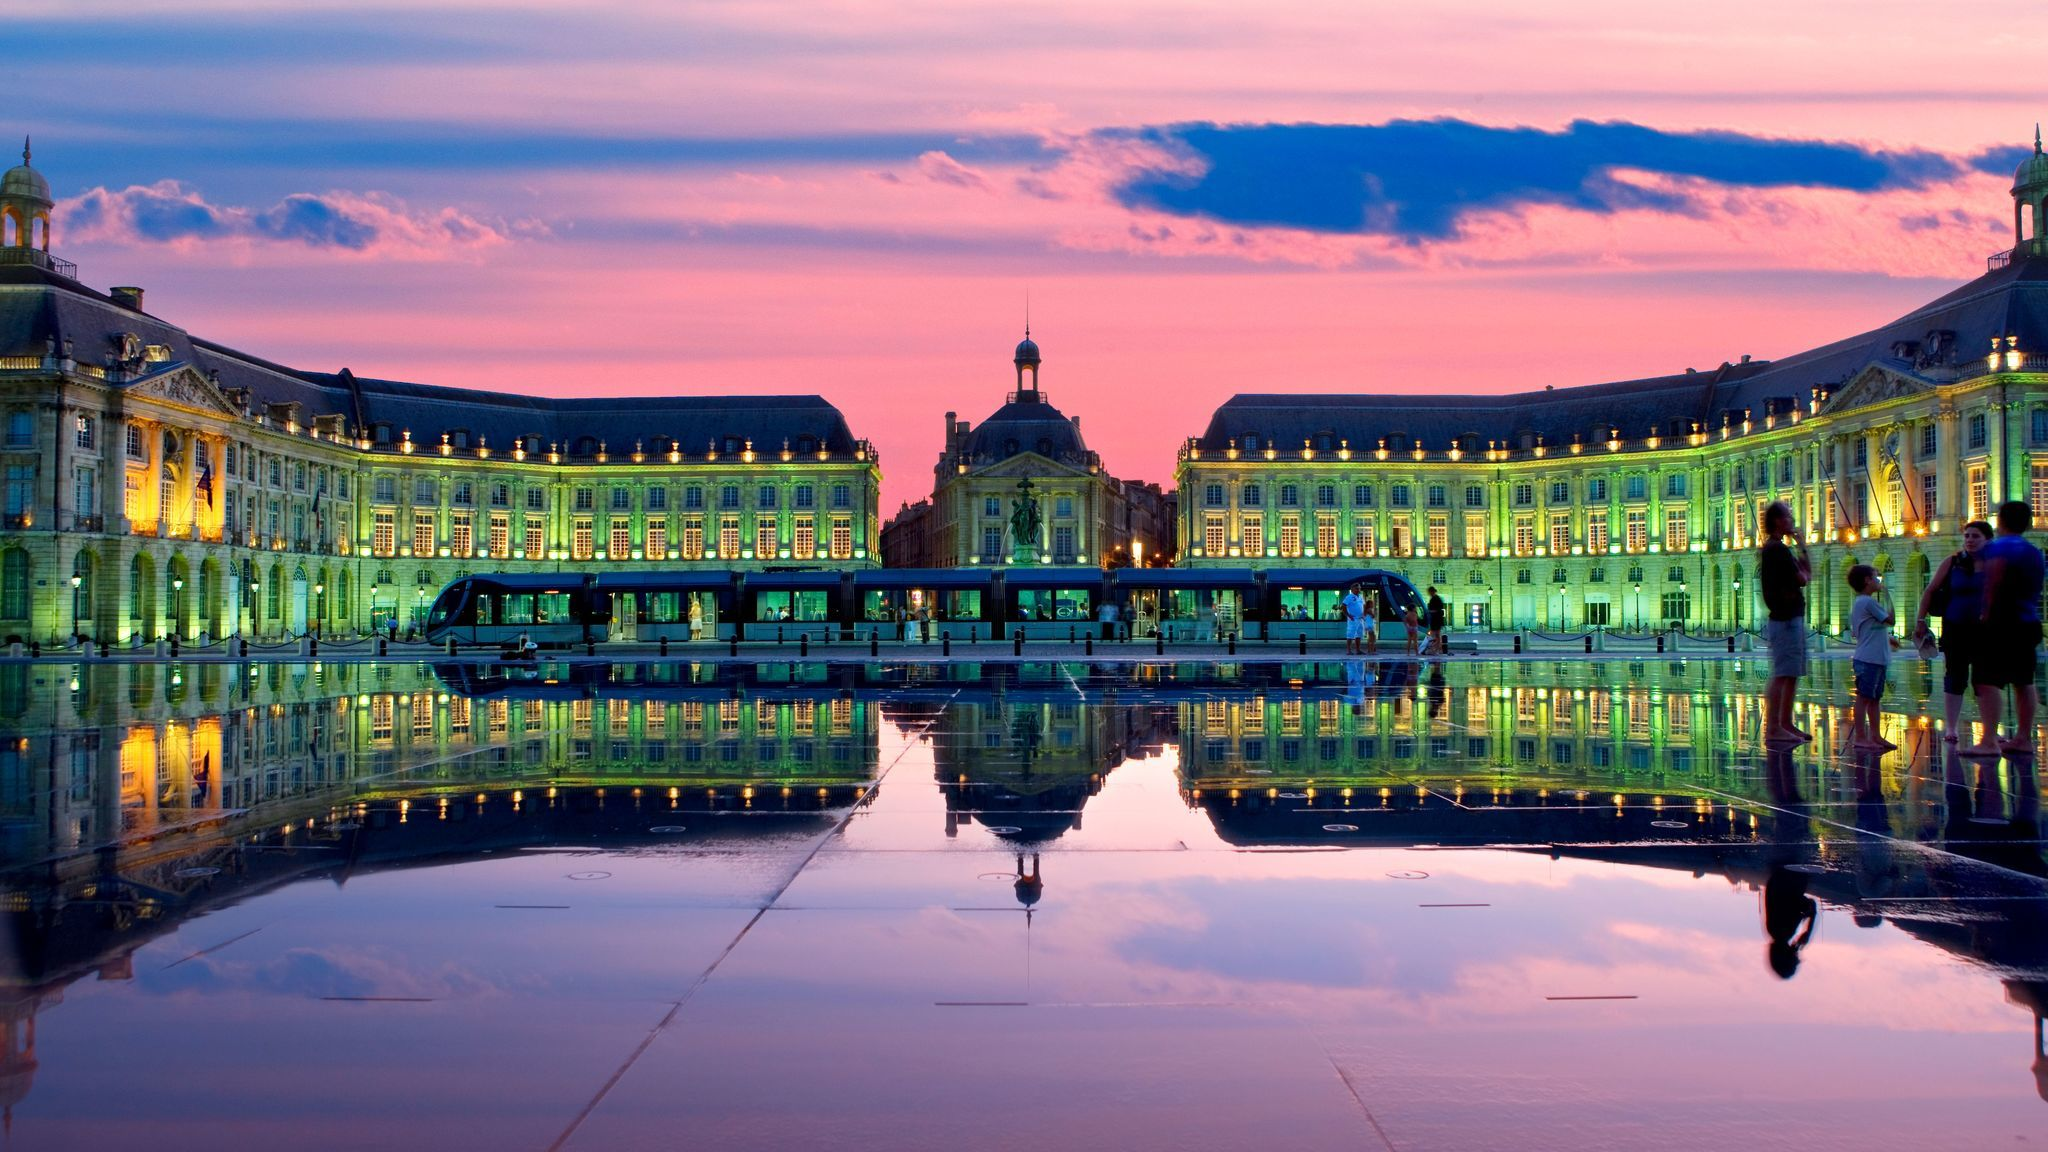 Ornamental water feature on  Place de la Bourse in Bordeaux, France, at dusk.